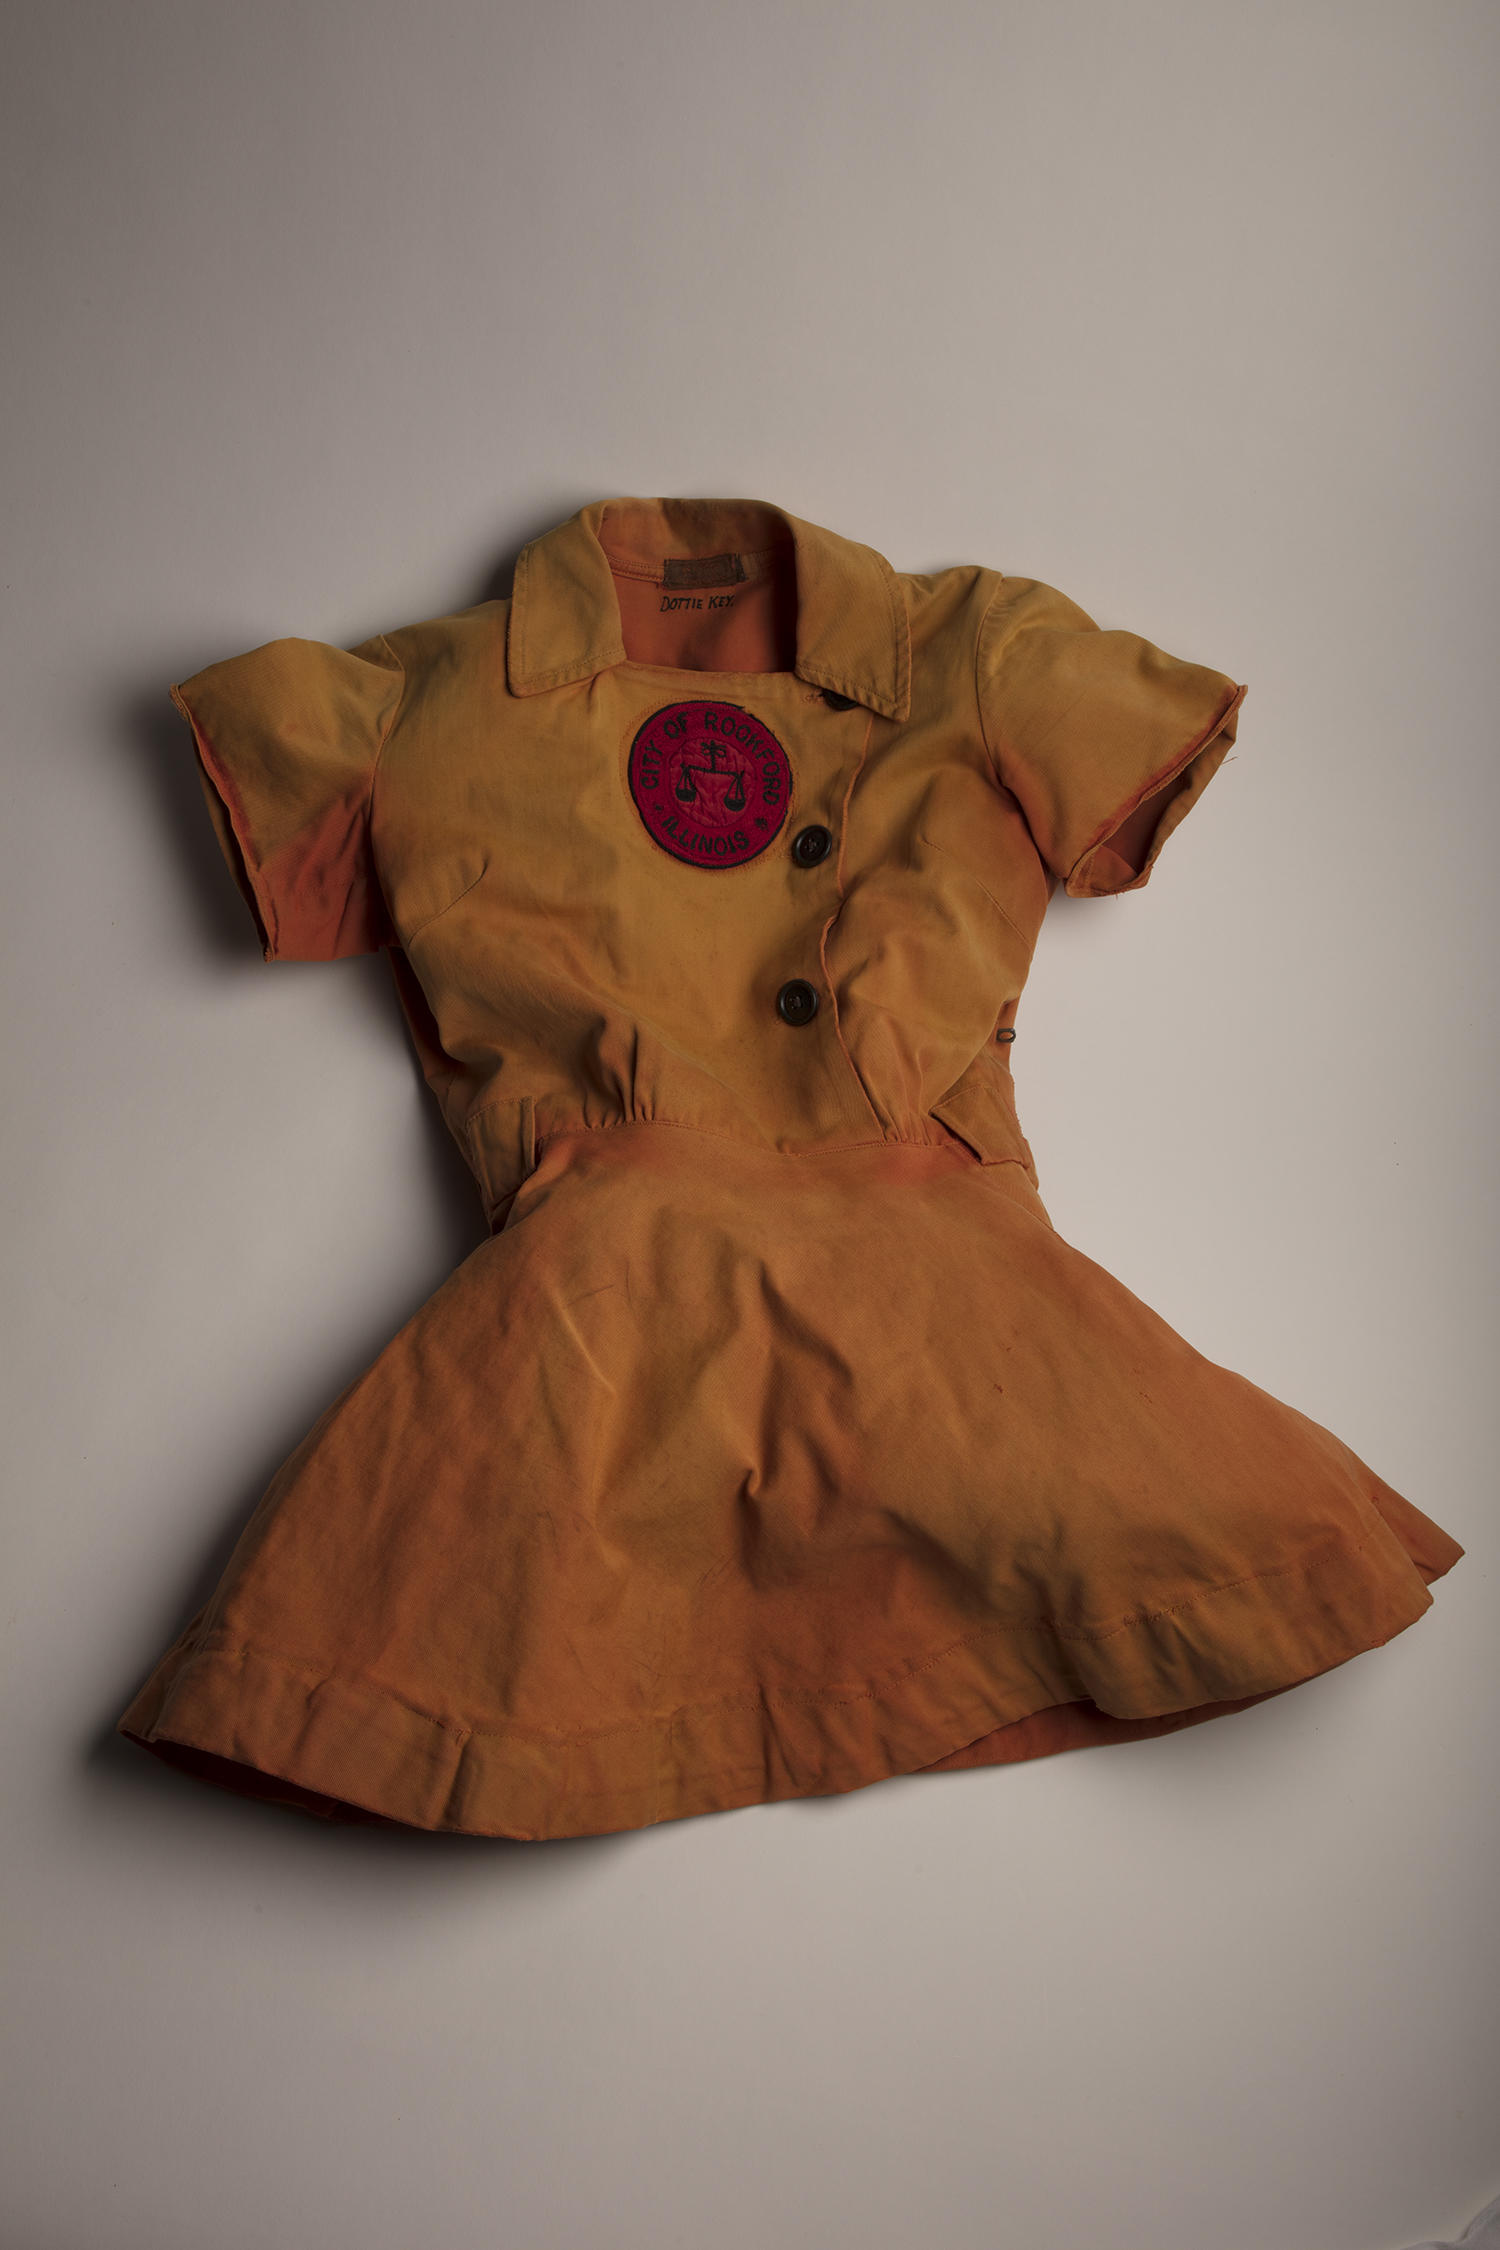 This uniform tunic was worn by Dottie Key during her 10 seasons with the Rockford Peaches (1945-1954). (Milo Stewart Jr. / National Baseball Hall of Fame and Museum)